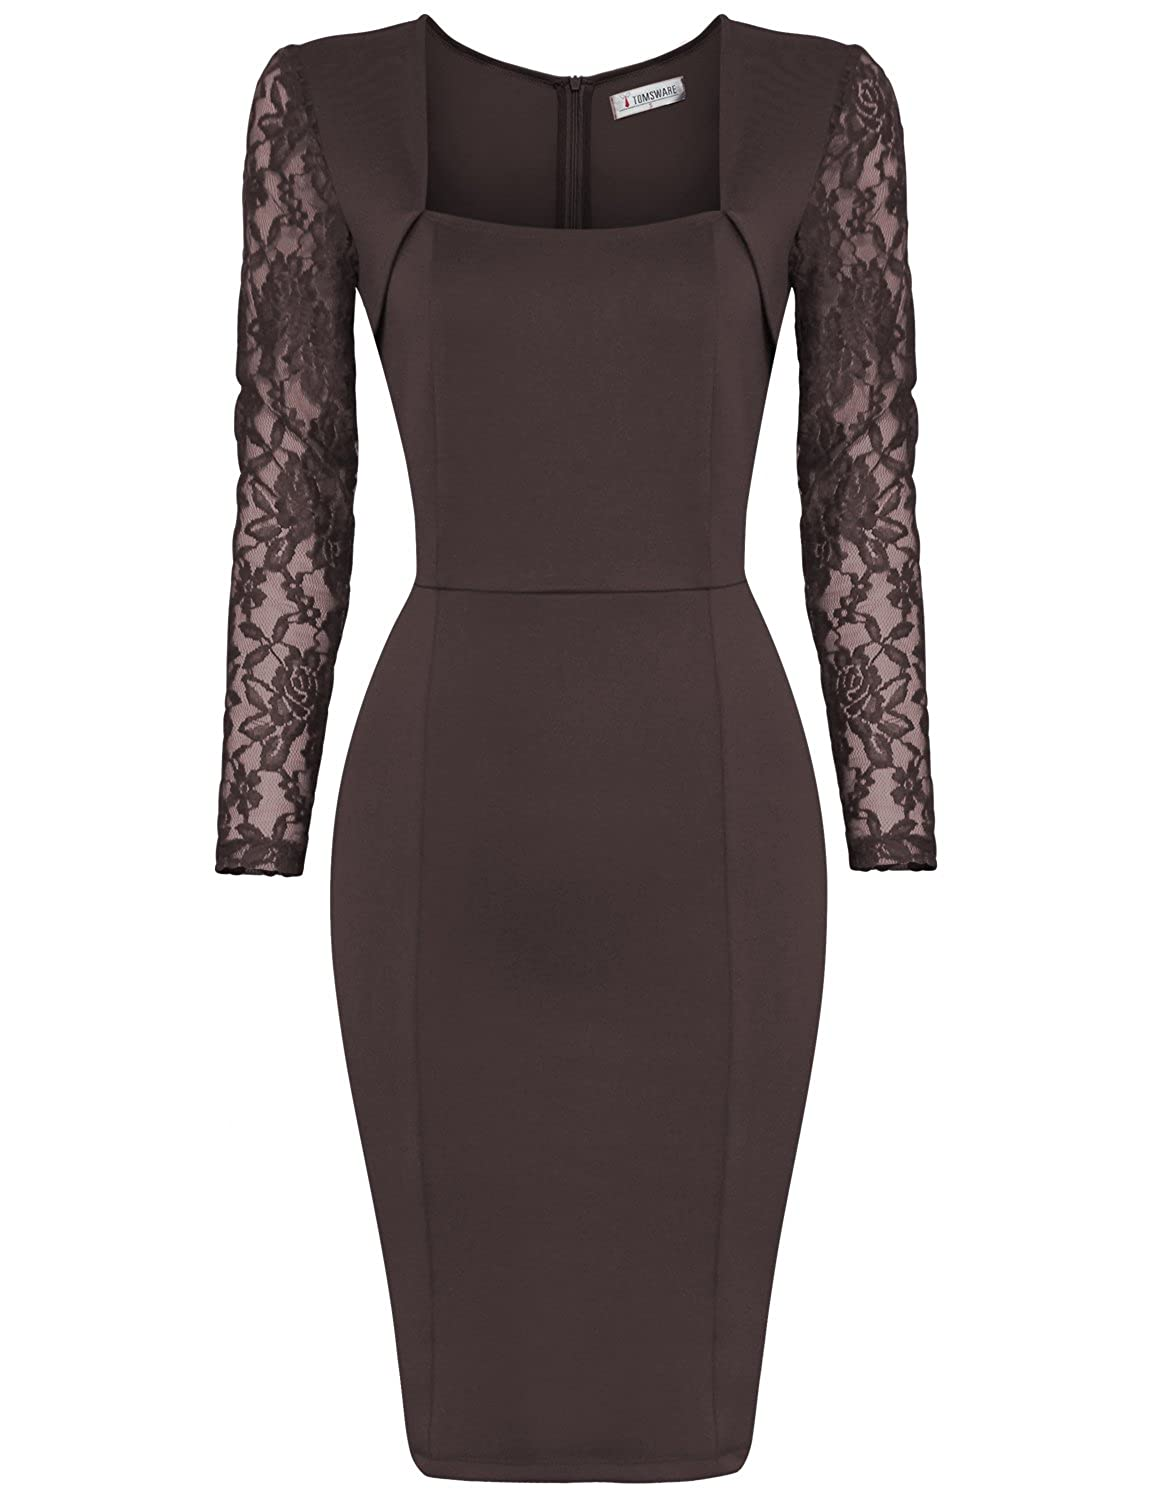 Tom's Ware Damen stilvolles Bodycon-Midi-Kleid langaermlig